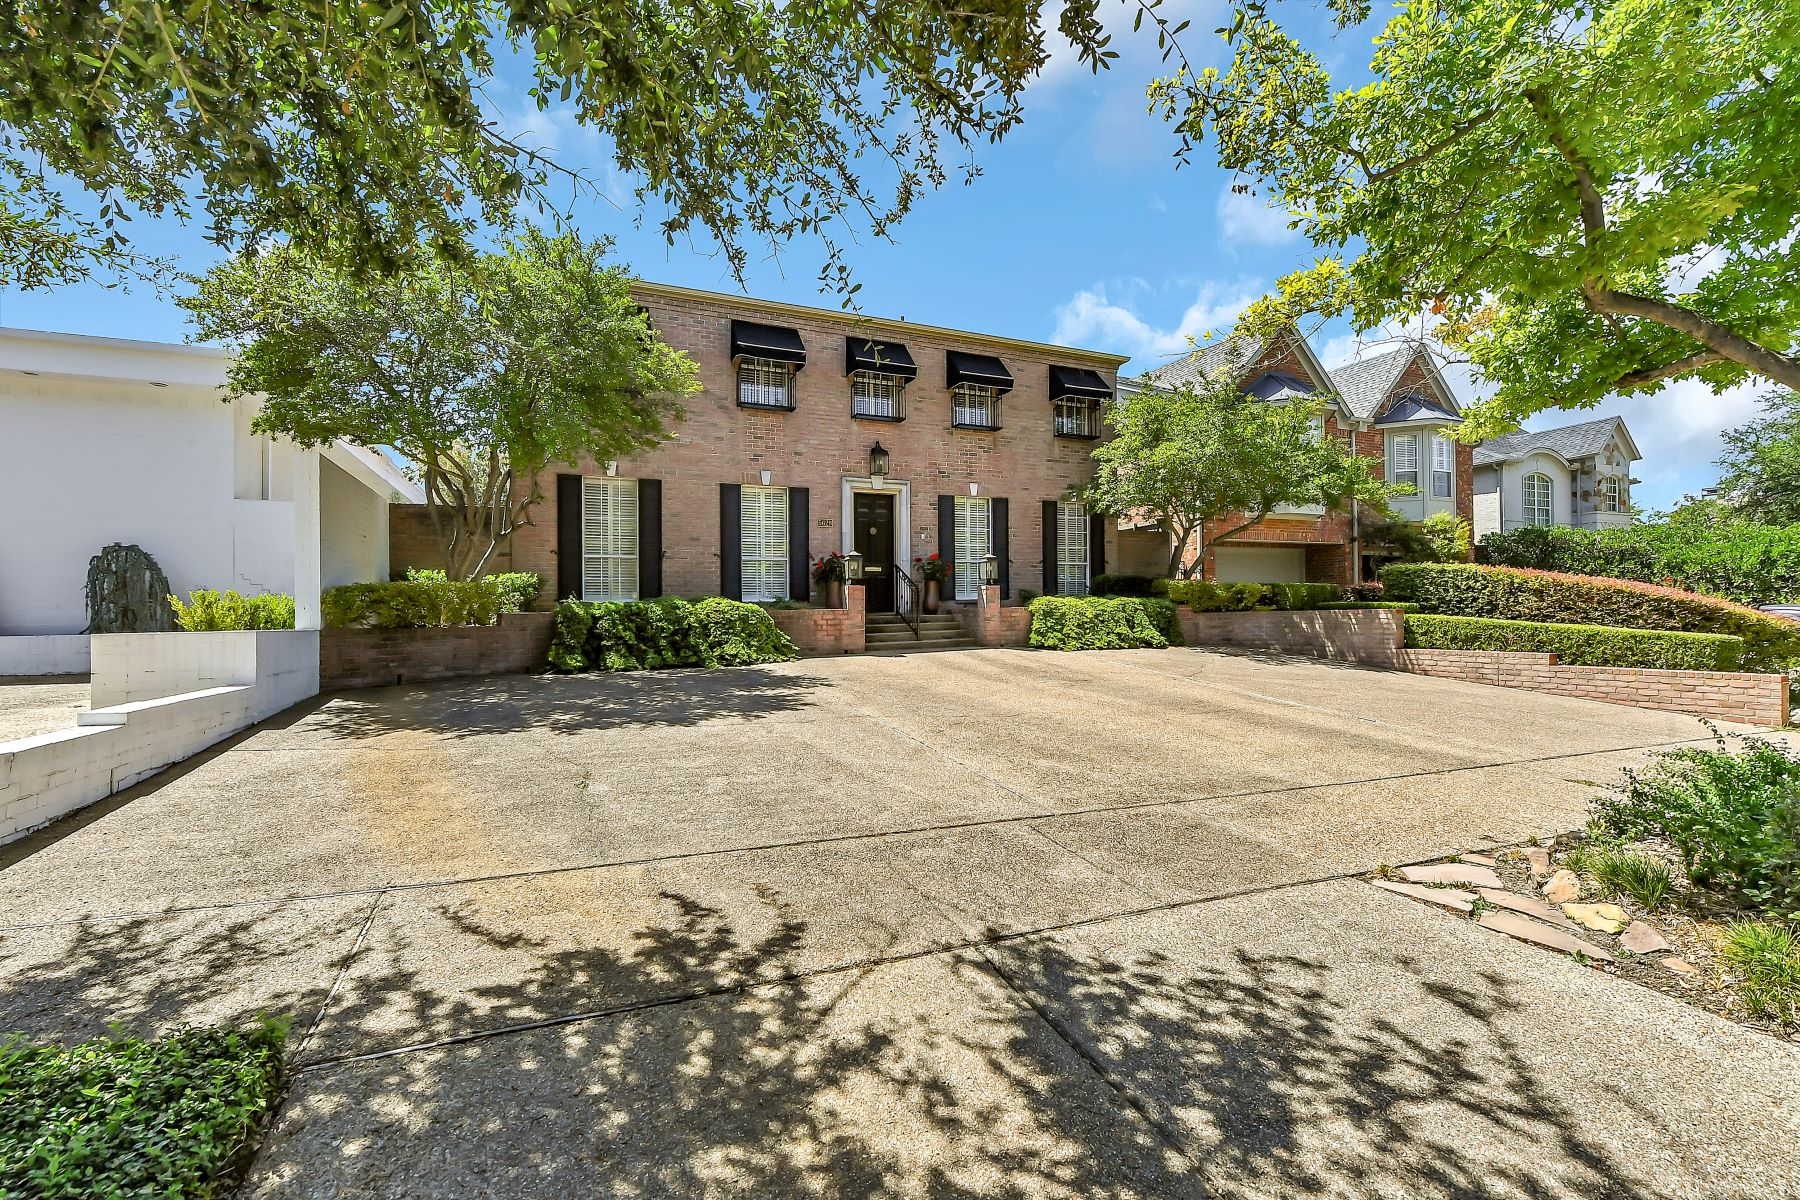 Single Family Homes for Active at A truly extraordinary home in Chamberlain Arlington Heights that's a must see! 5629 El Campo Avenue Fort Worth, Texas 76107 United States